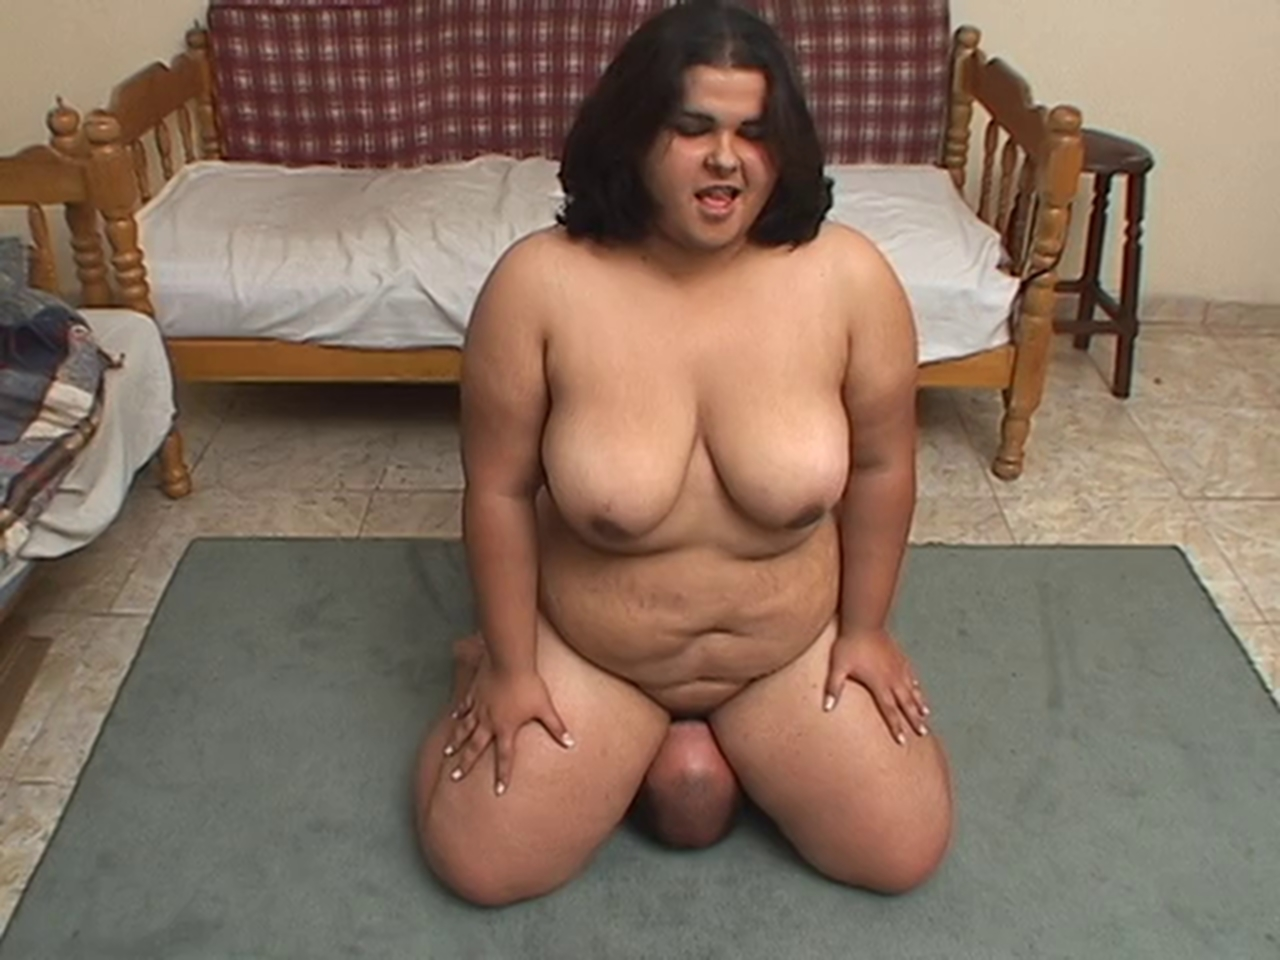 Bbw fat women facesitting remarkable, rather